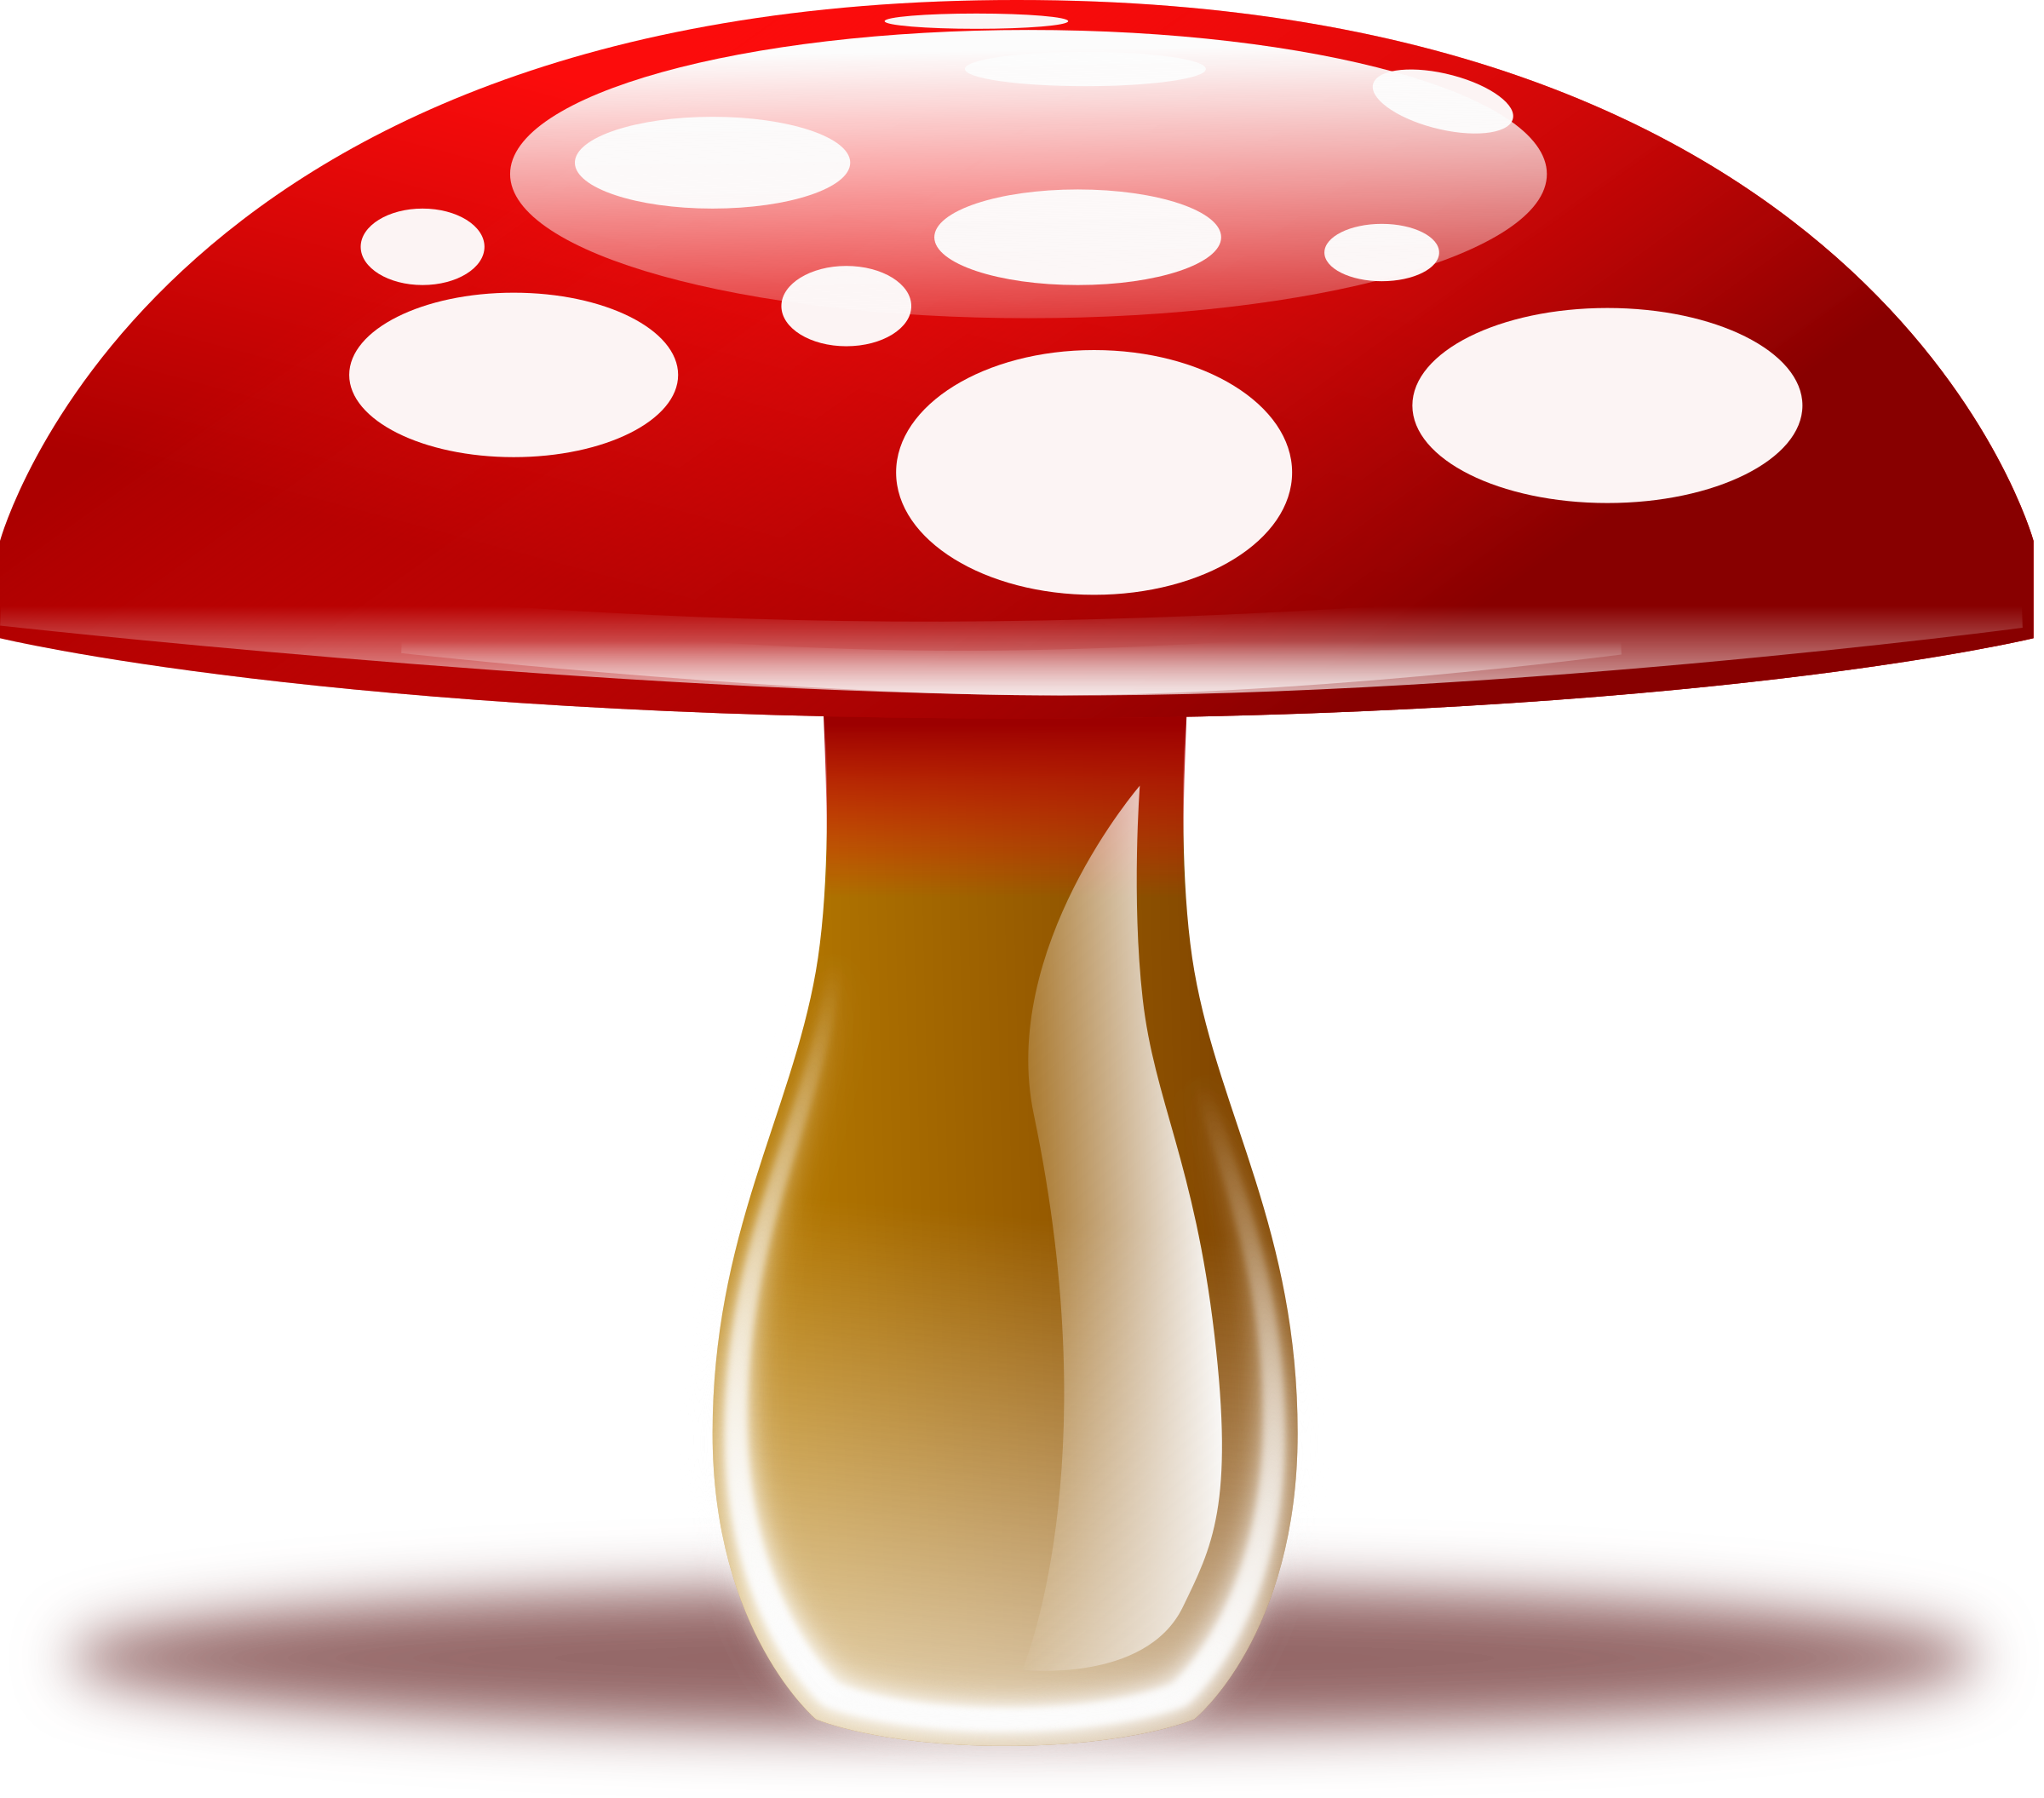 Clipart png mushroom. Red free icons and